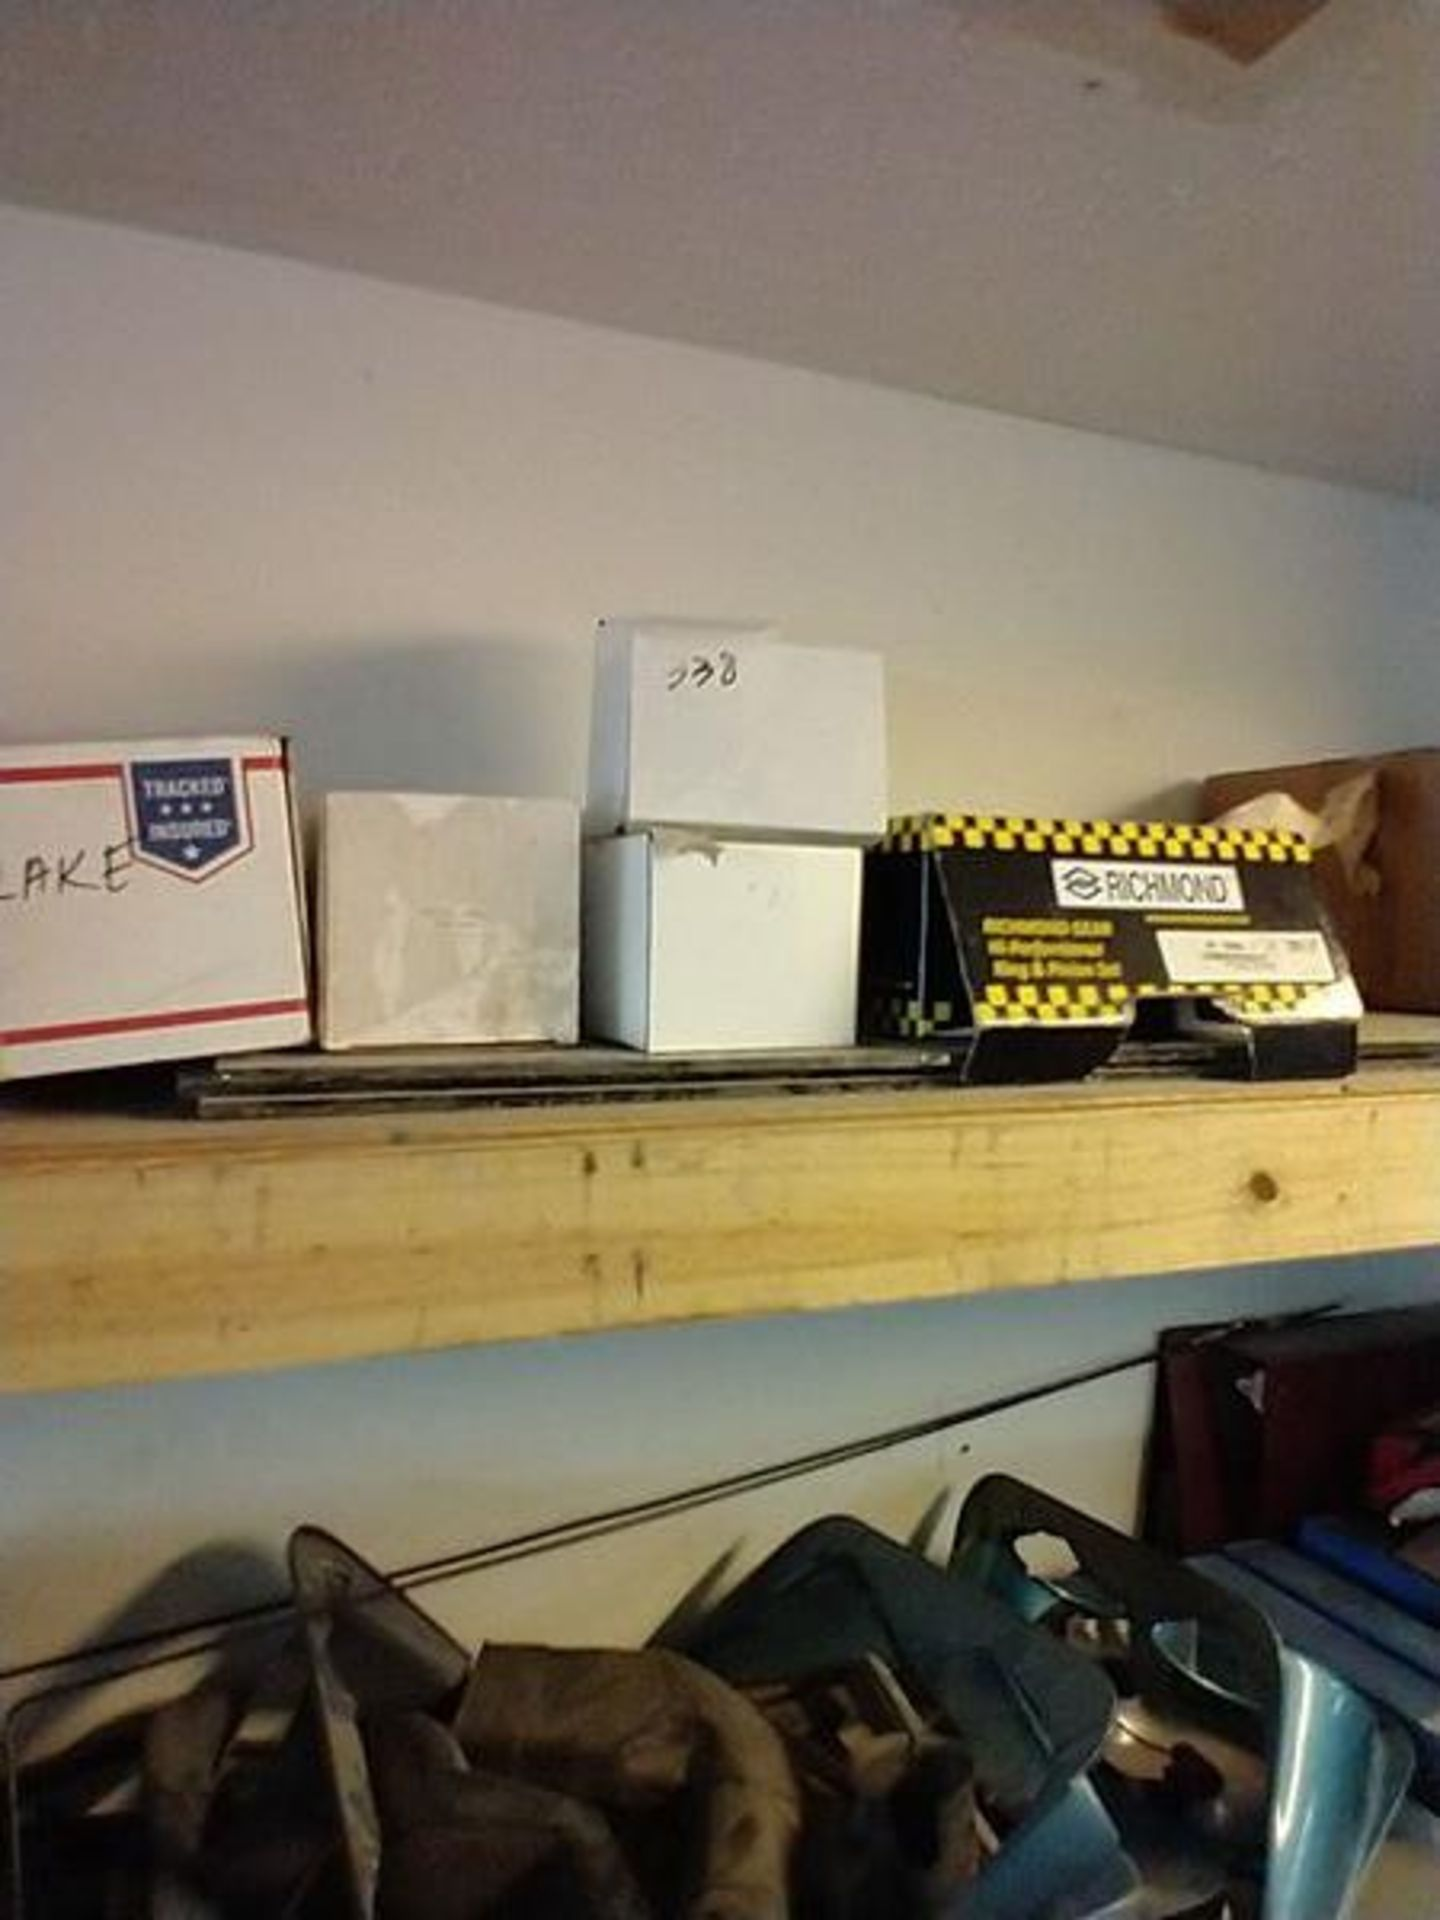 LOT OF ASSORTED CAR PARTS ON 2 SHELVES AND FLOOR - Image 9 of 23